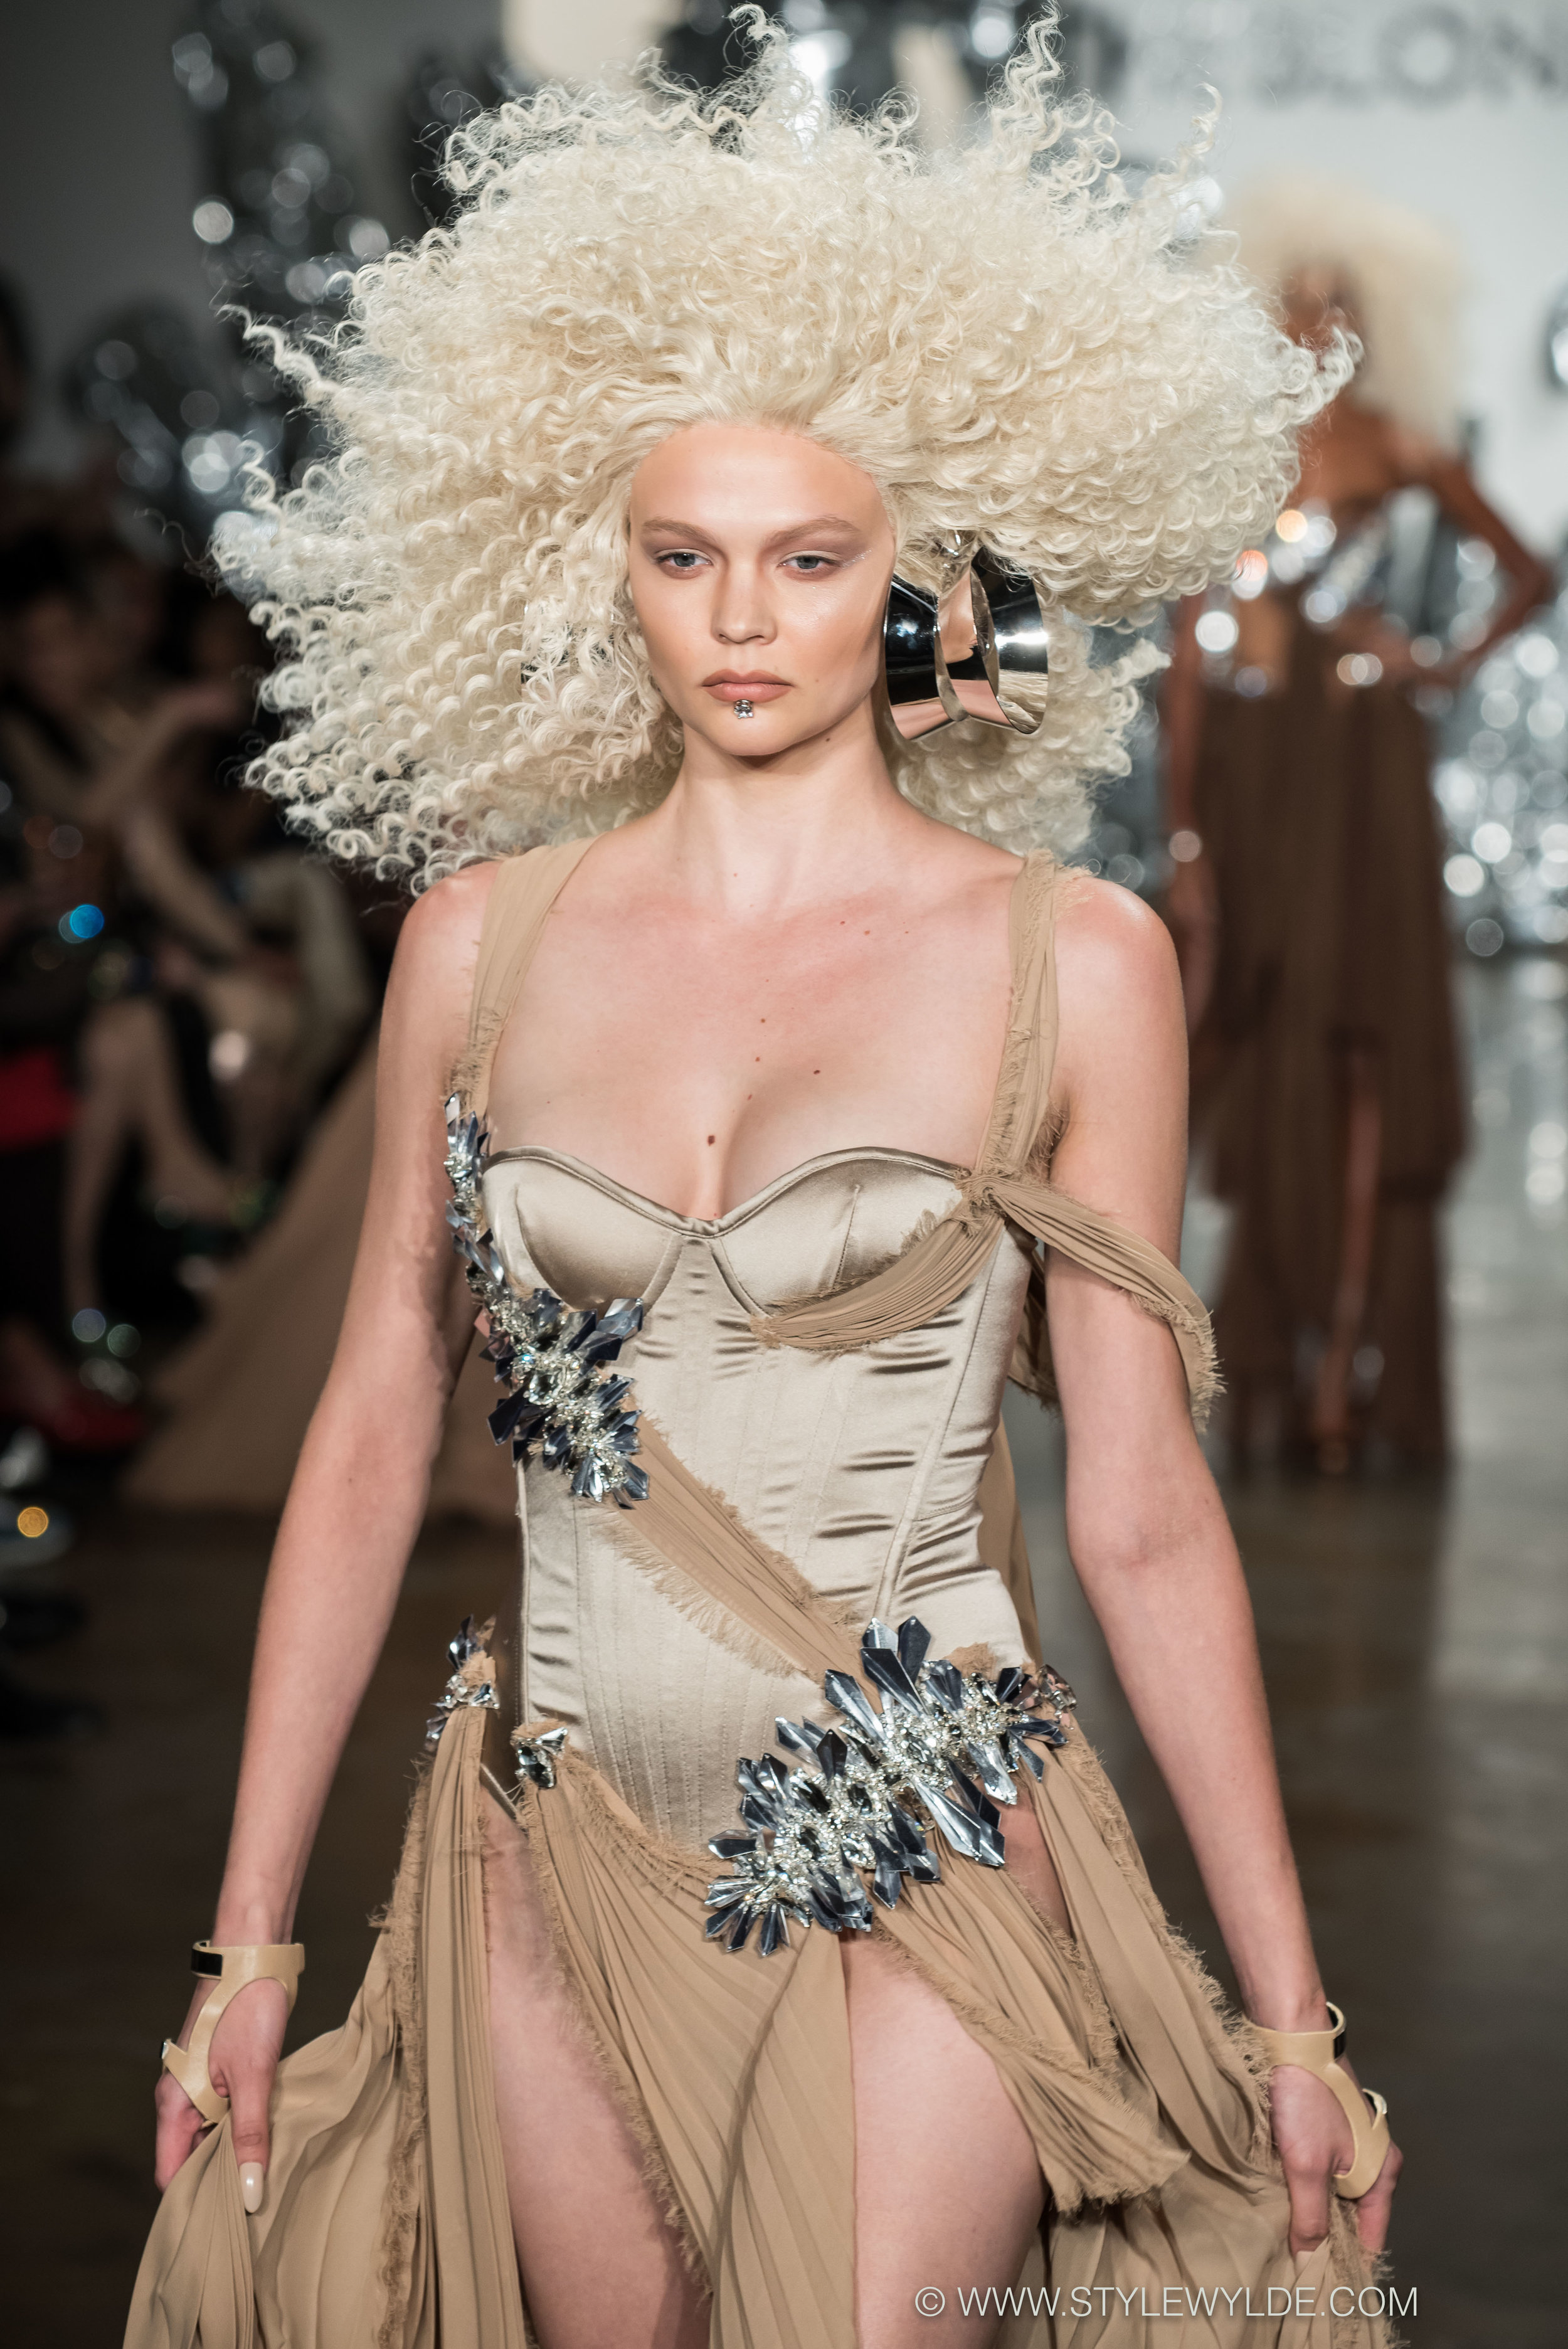 stylewylde-The Blonds SS17-FOH- Edits-11.jpg